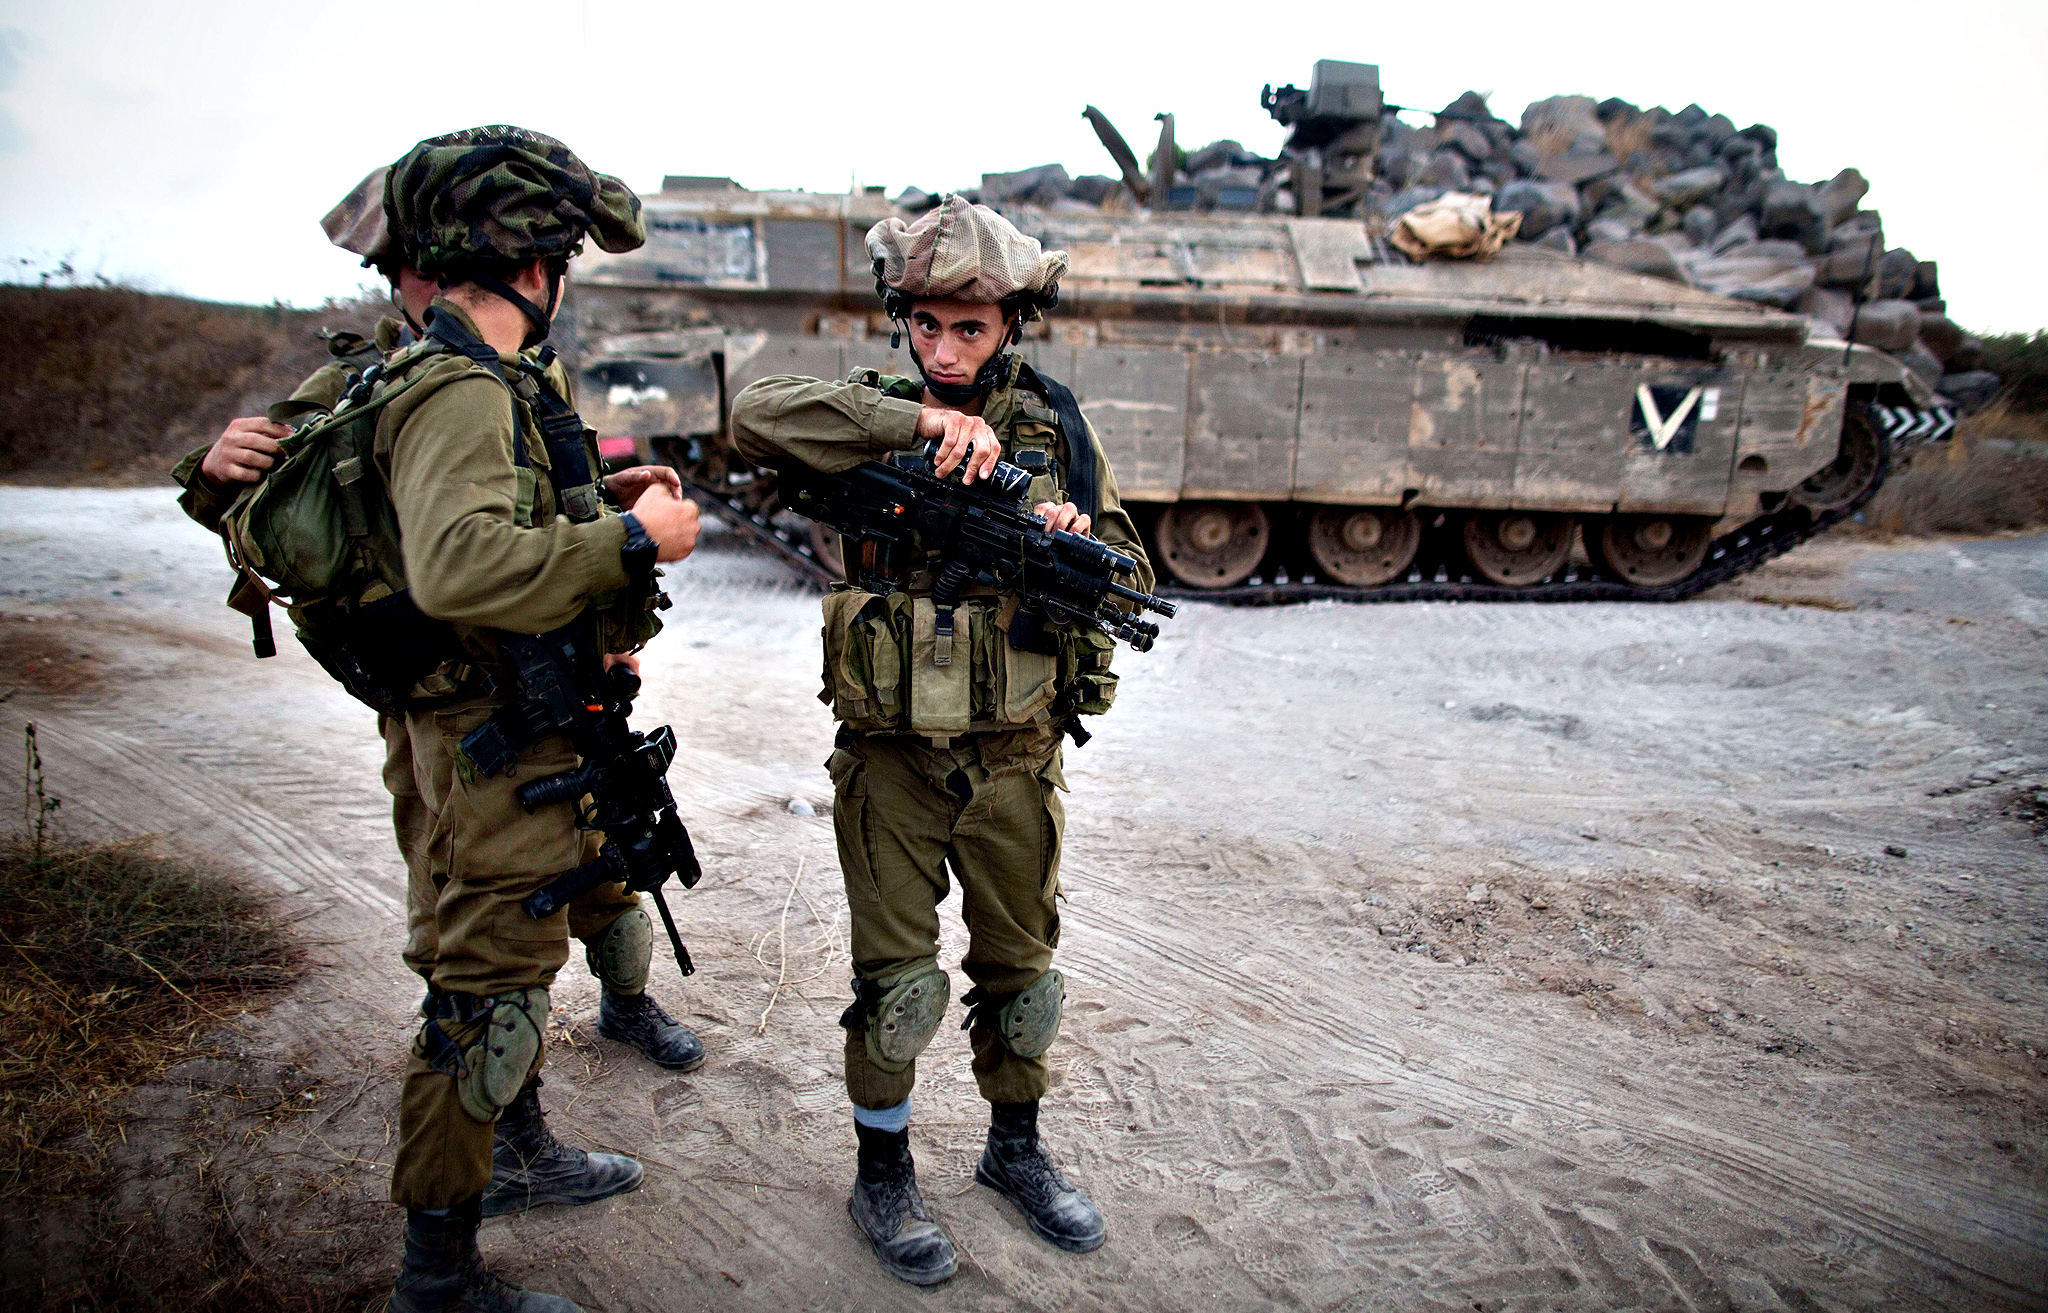 Israeli Military Prepares For Unrest In Golan Heights, As U.S. Moves To Recognize Them As Israeli Territory